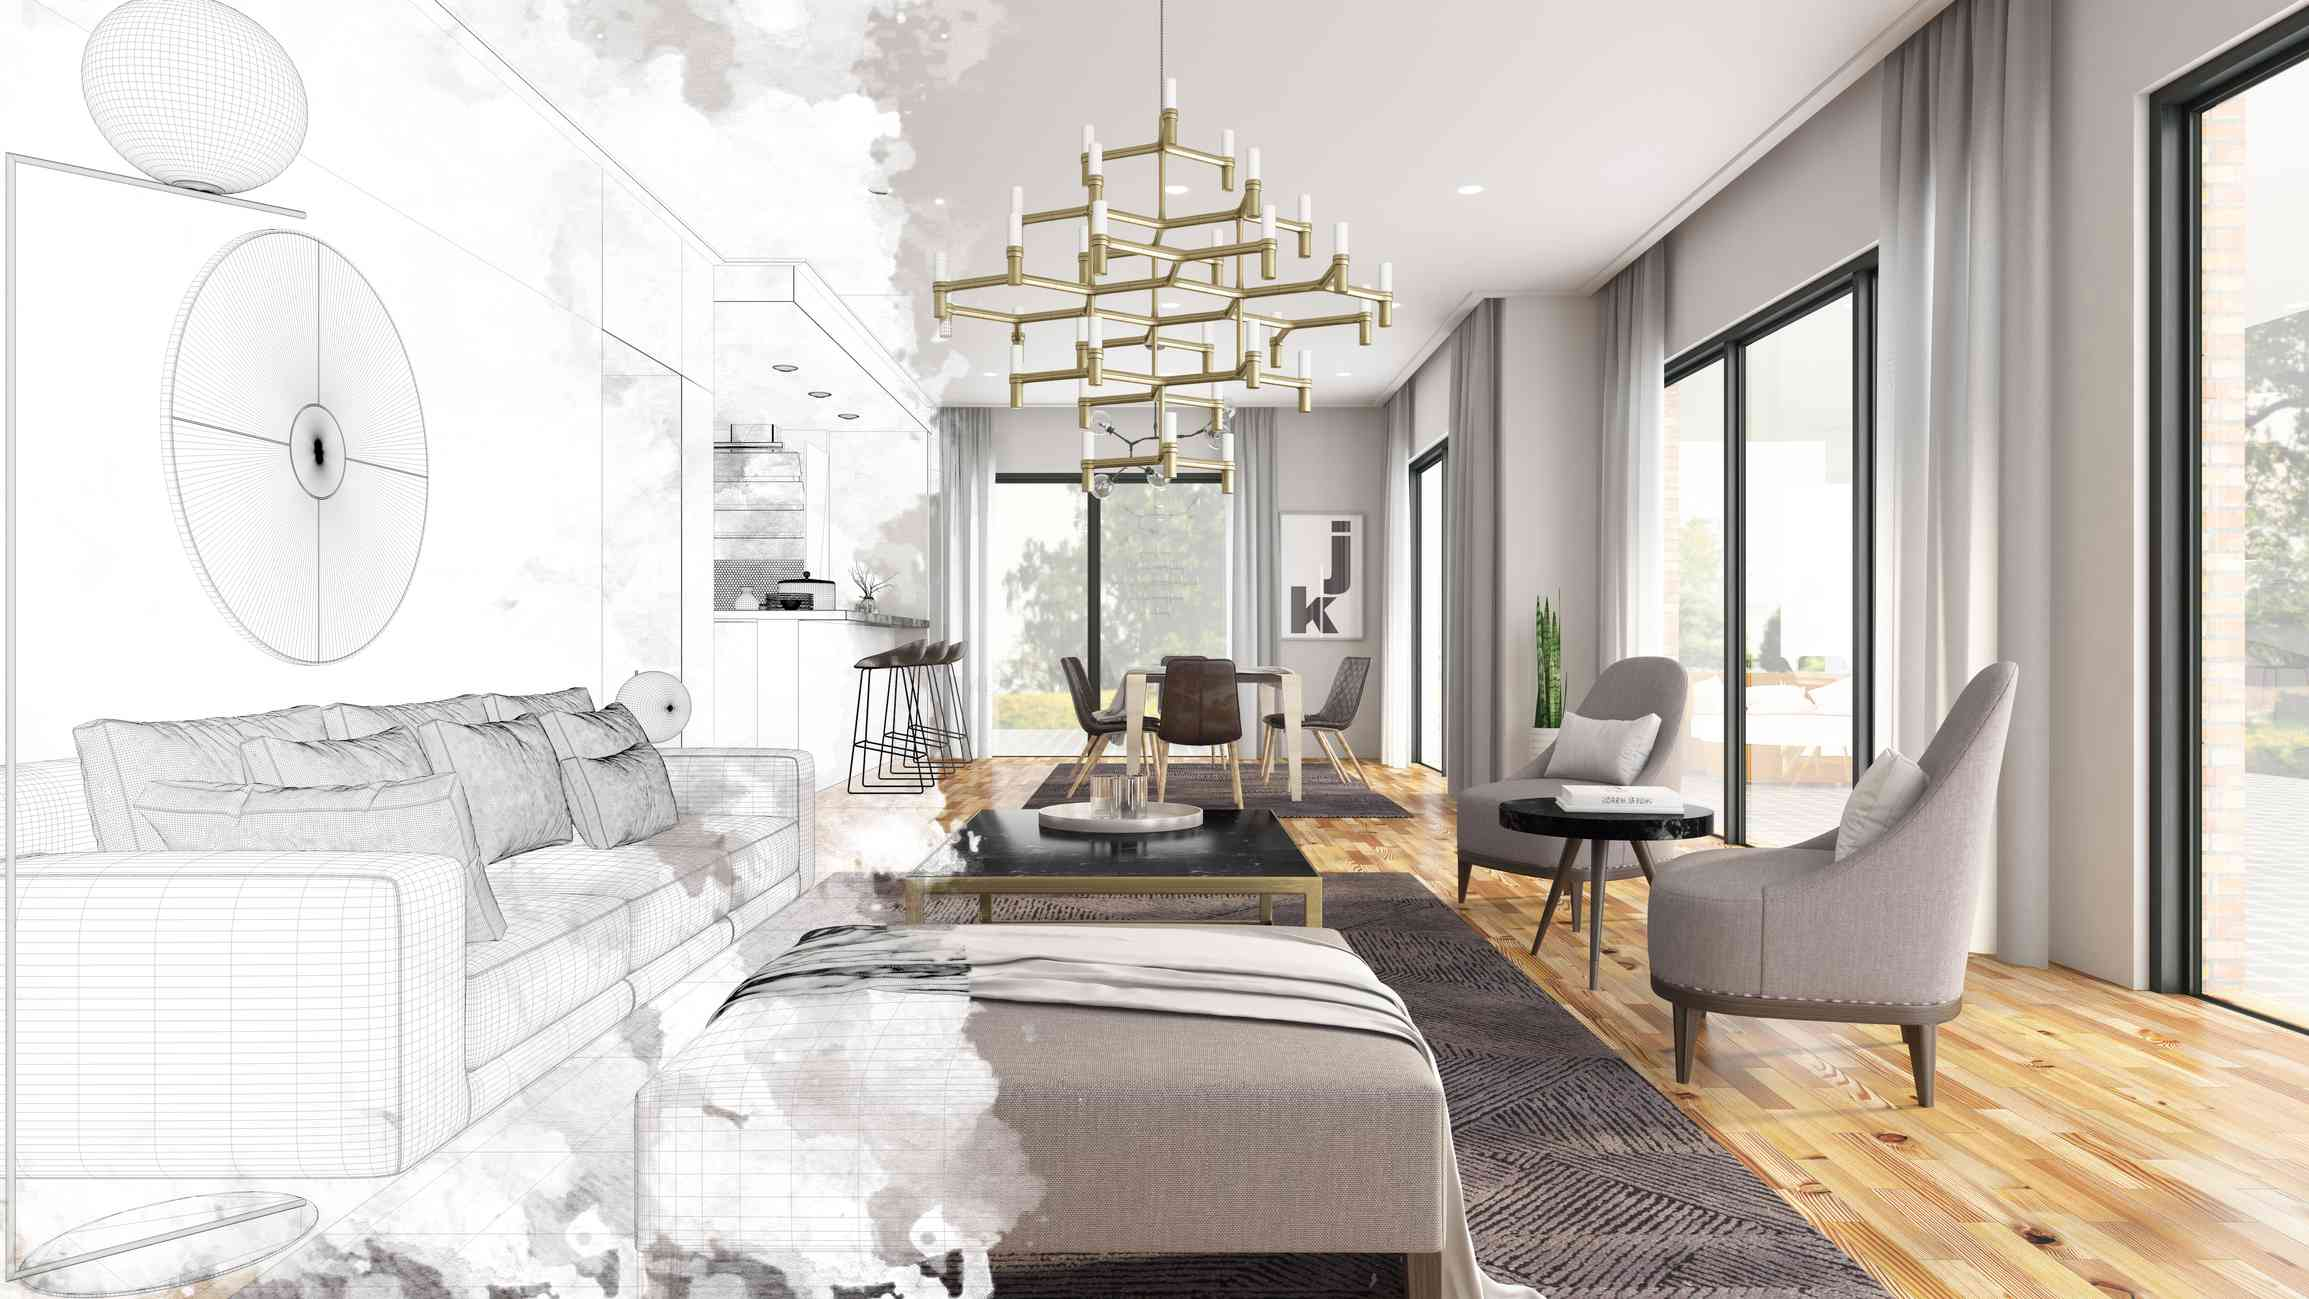 Half draw sketch of a modern living room interior overlayed by a matching photograph.